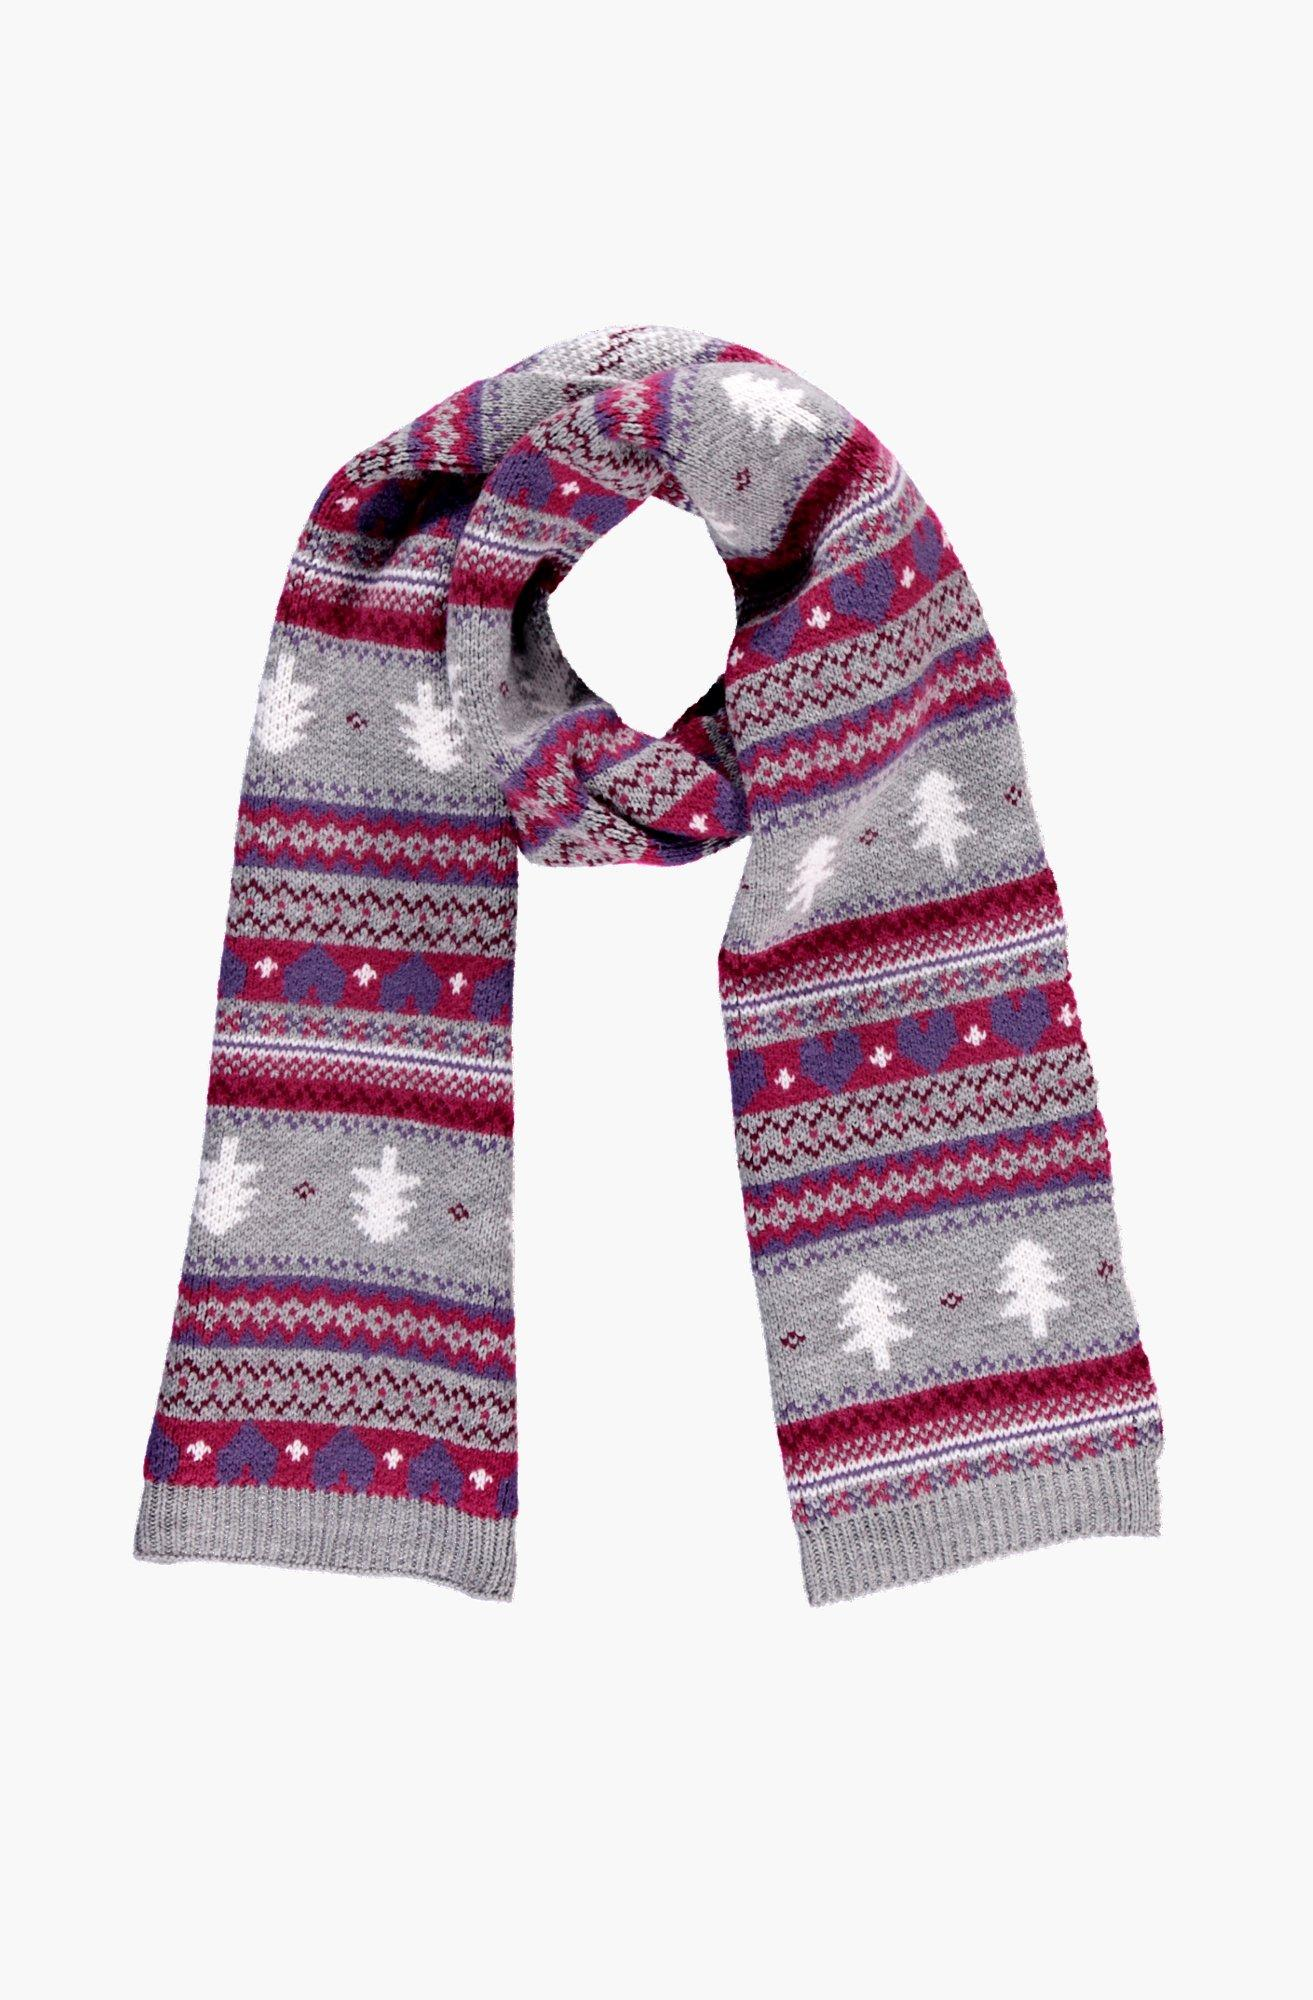 Fairisle Knitted Scarf - grey - Eloise Fairisle Kn